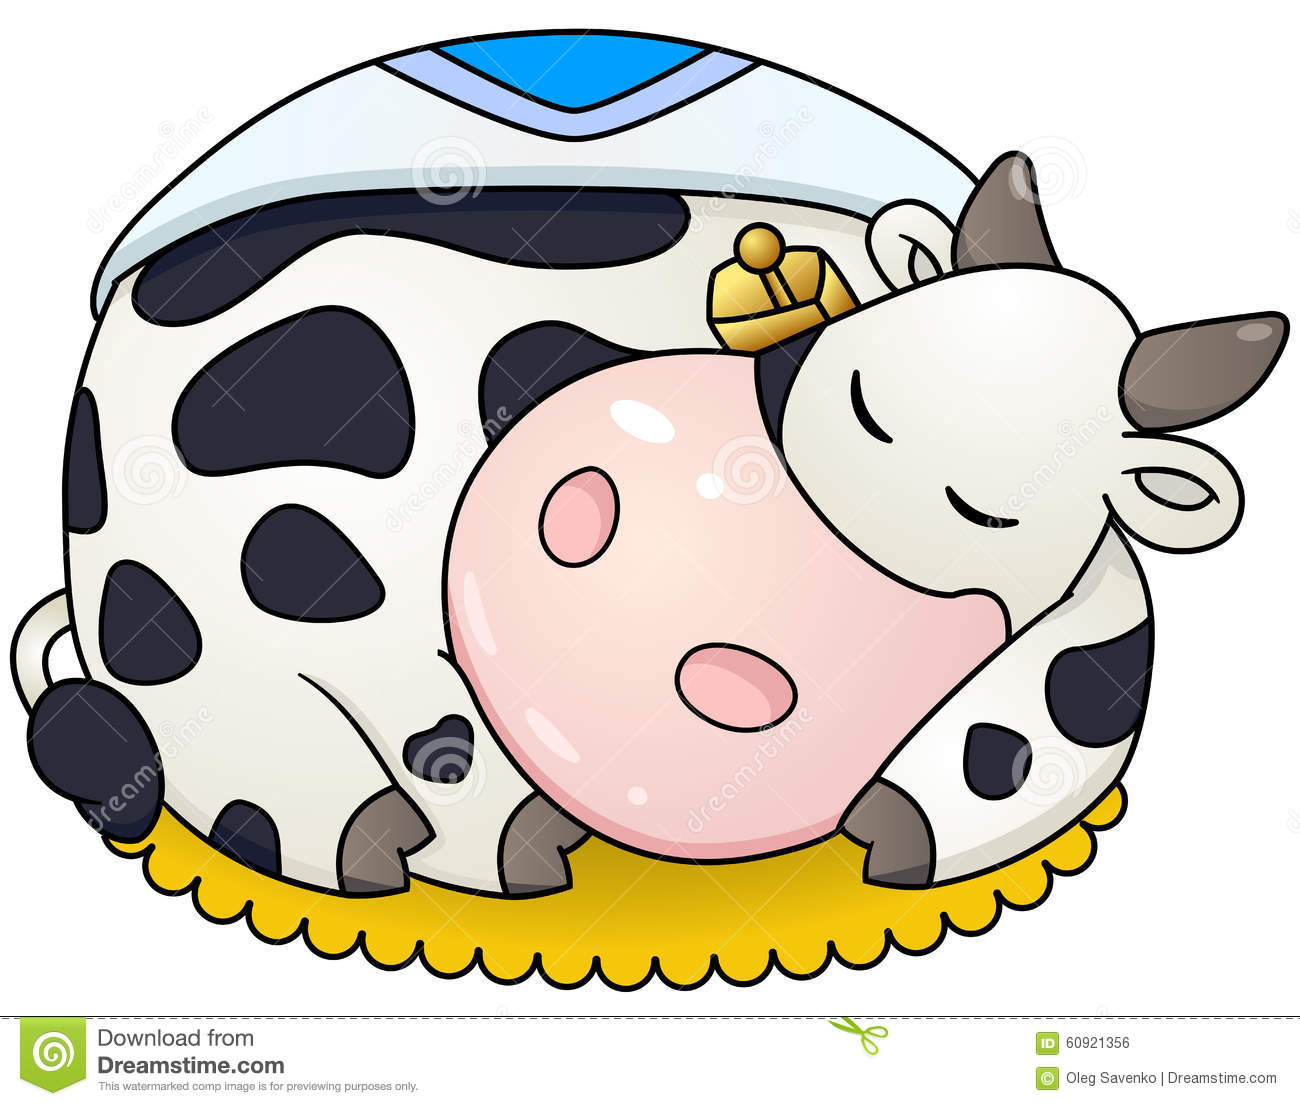 cow clipart simple - photo #14